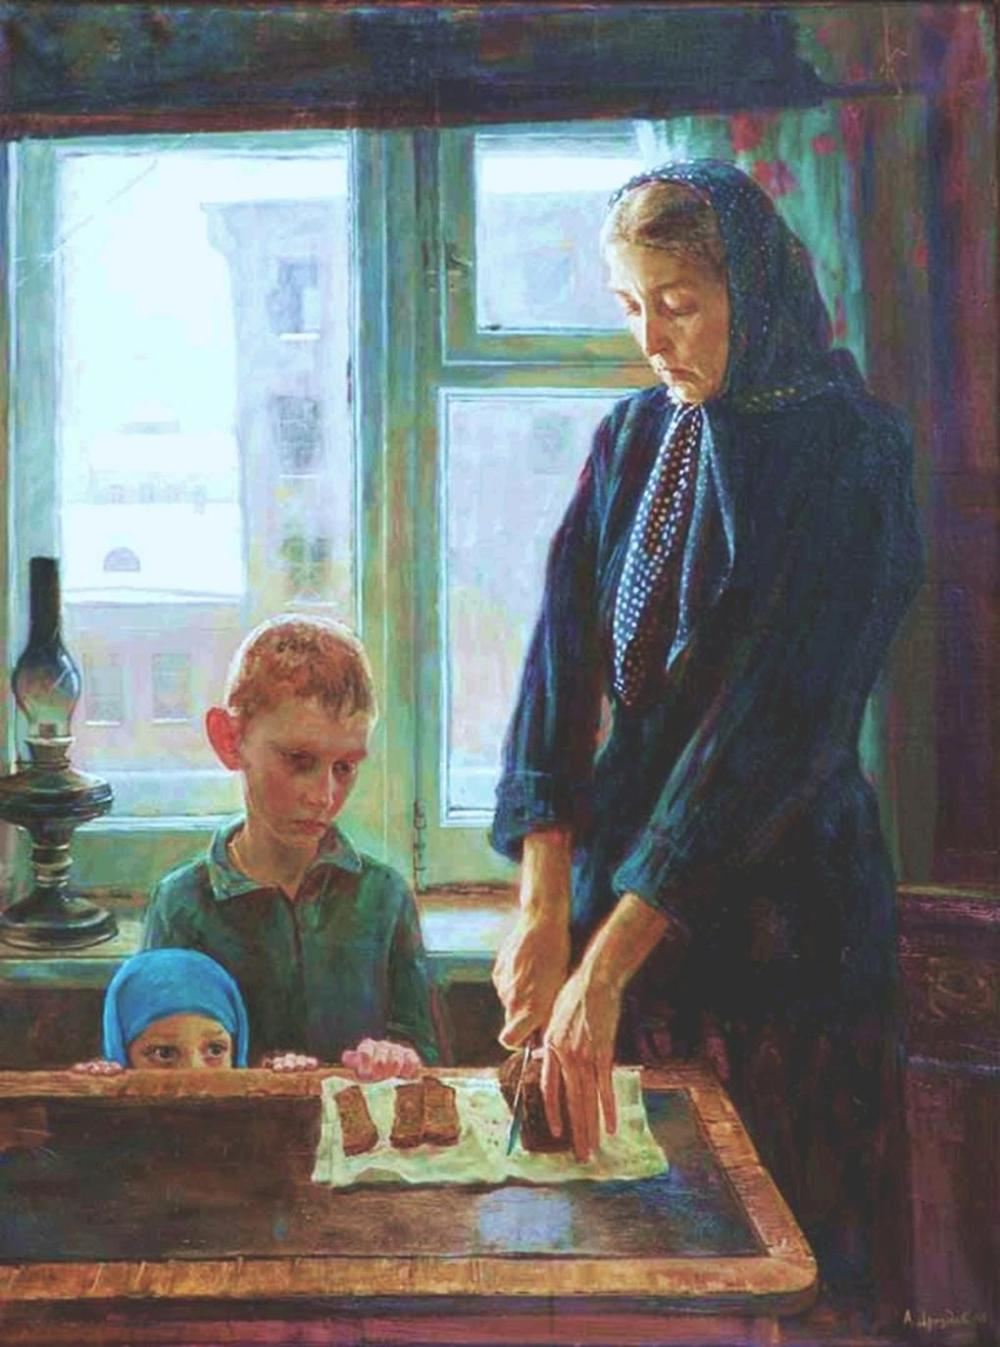 andrei-drozdov-bread-during-the-war-2005